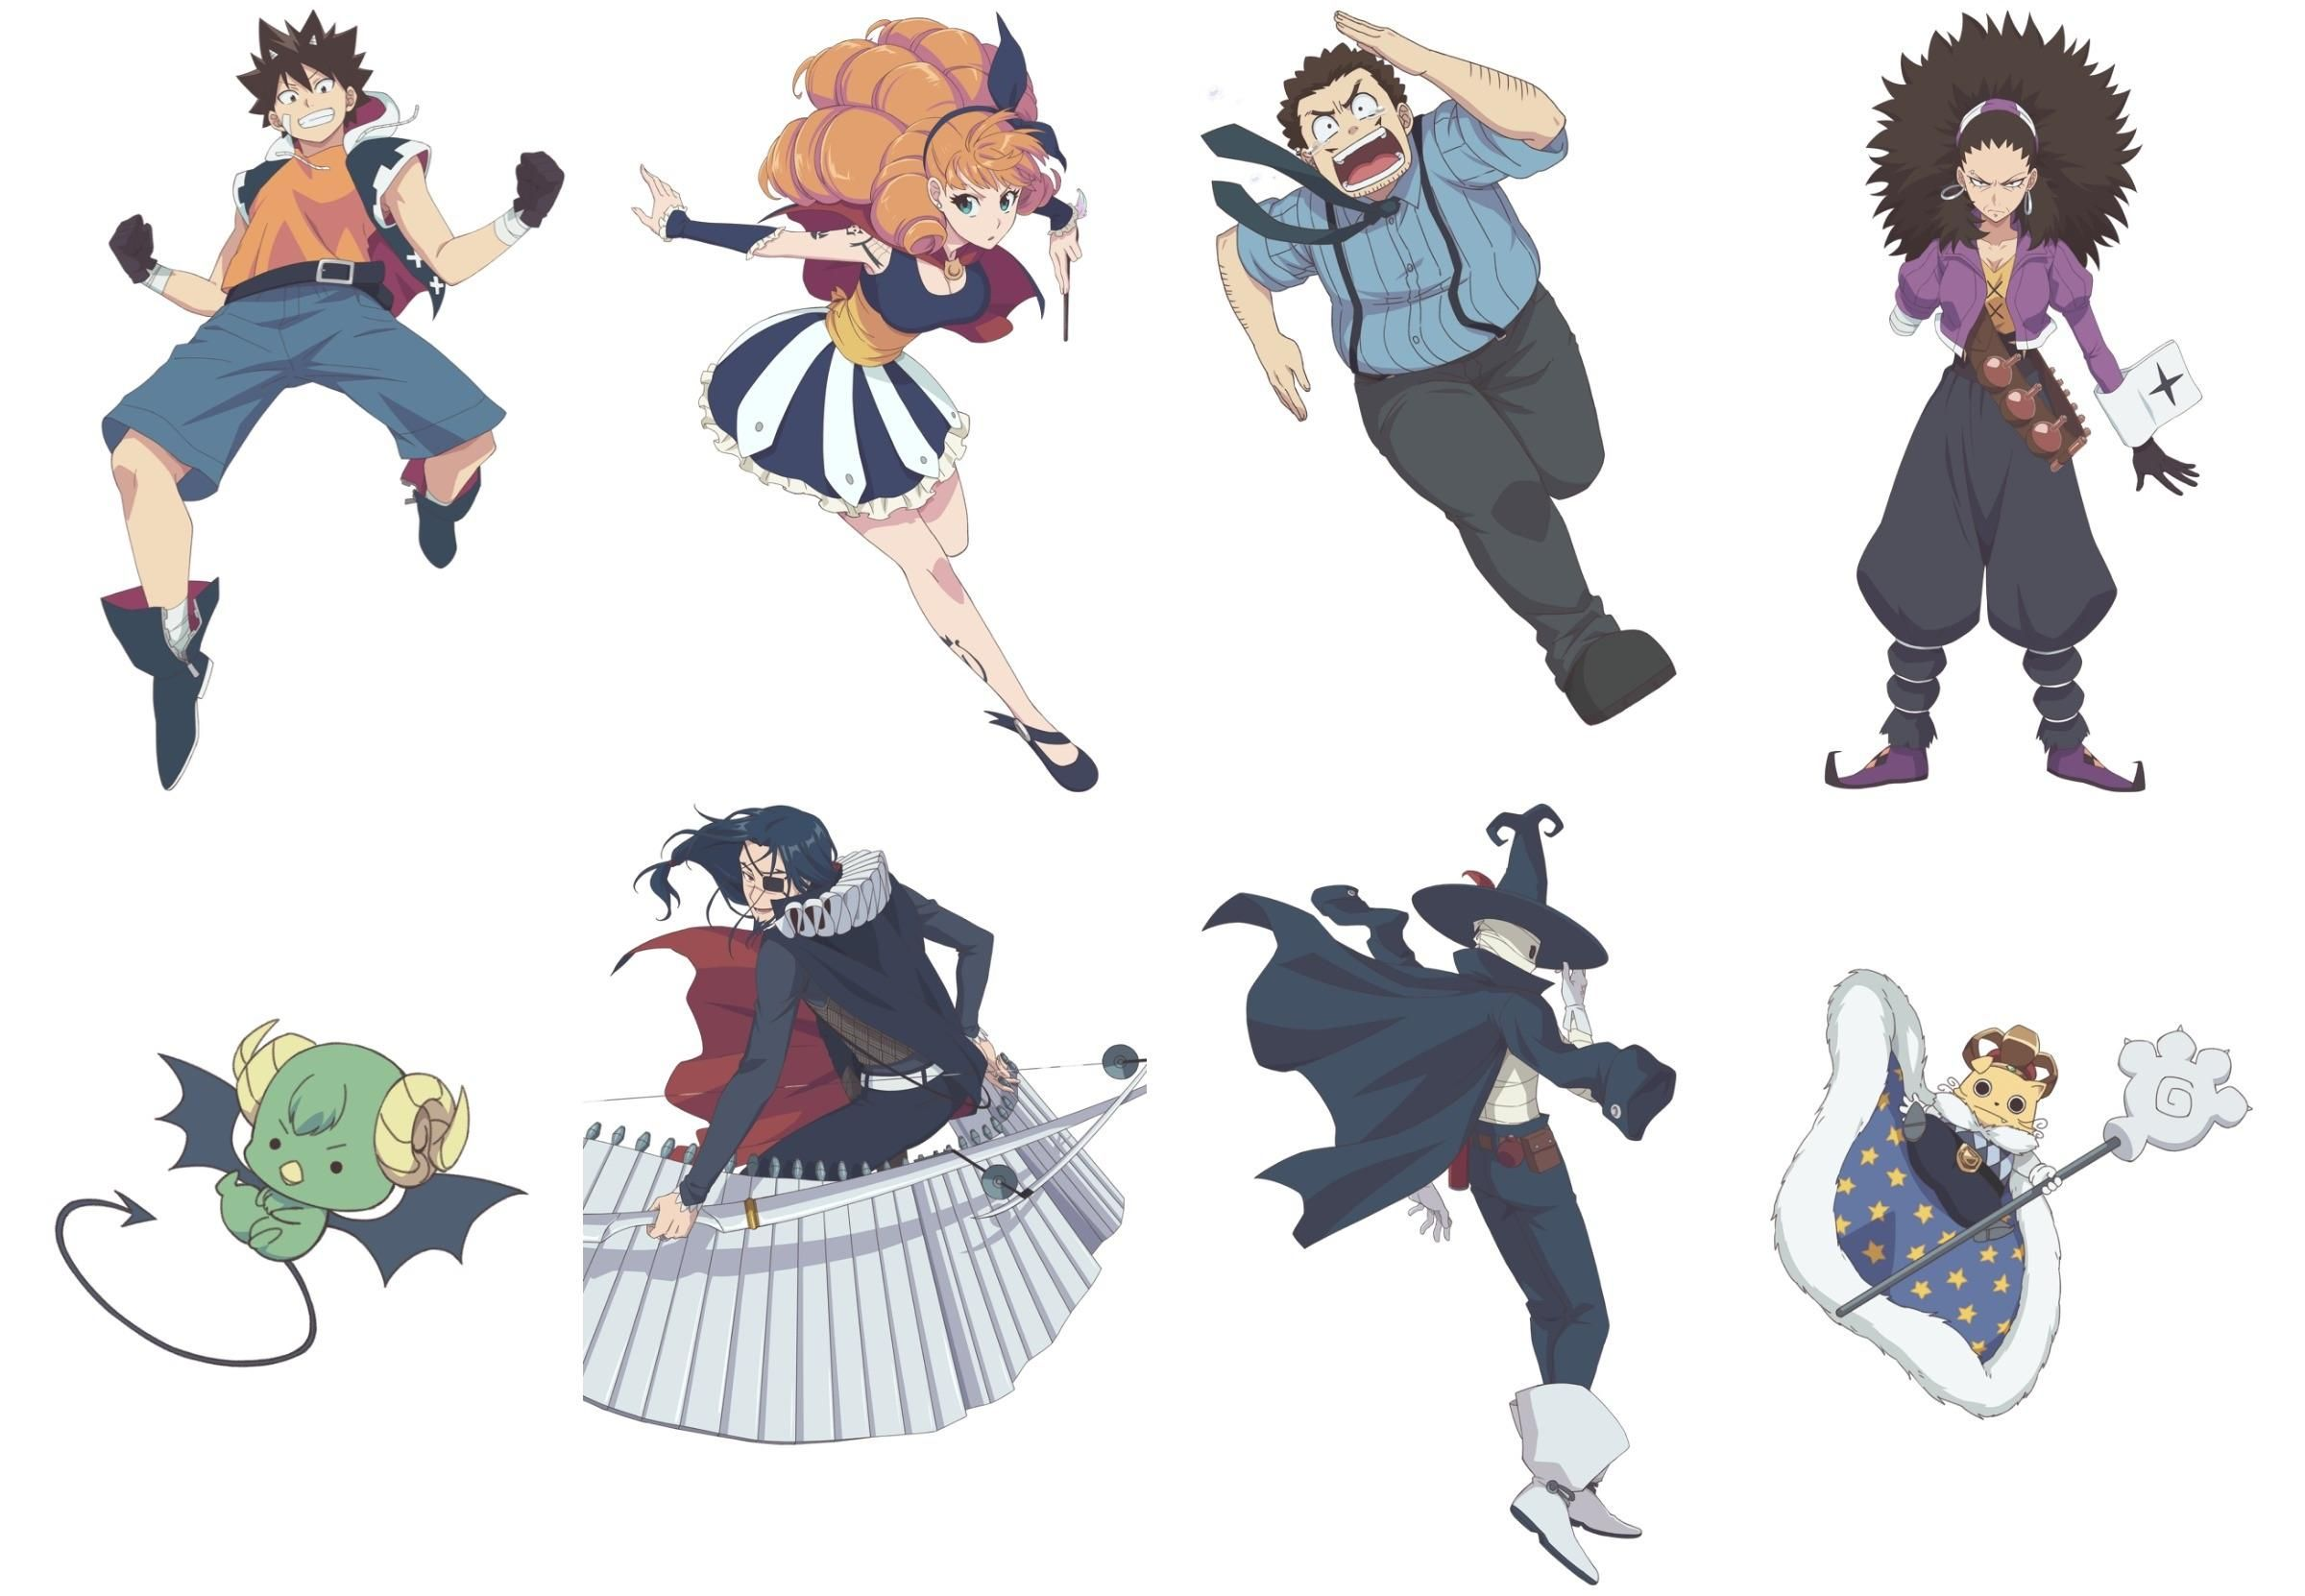 Pin By A Moy On Pose Reference Anime Characters Anime Diy Wall Hanging Yarn